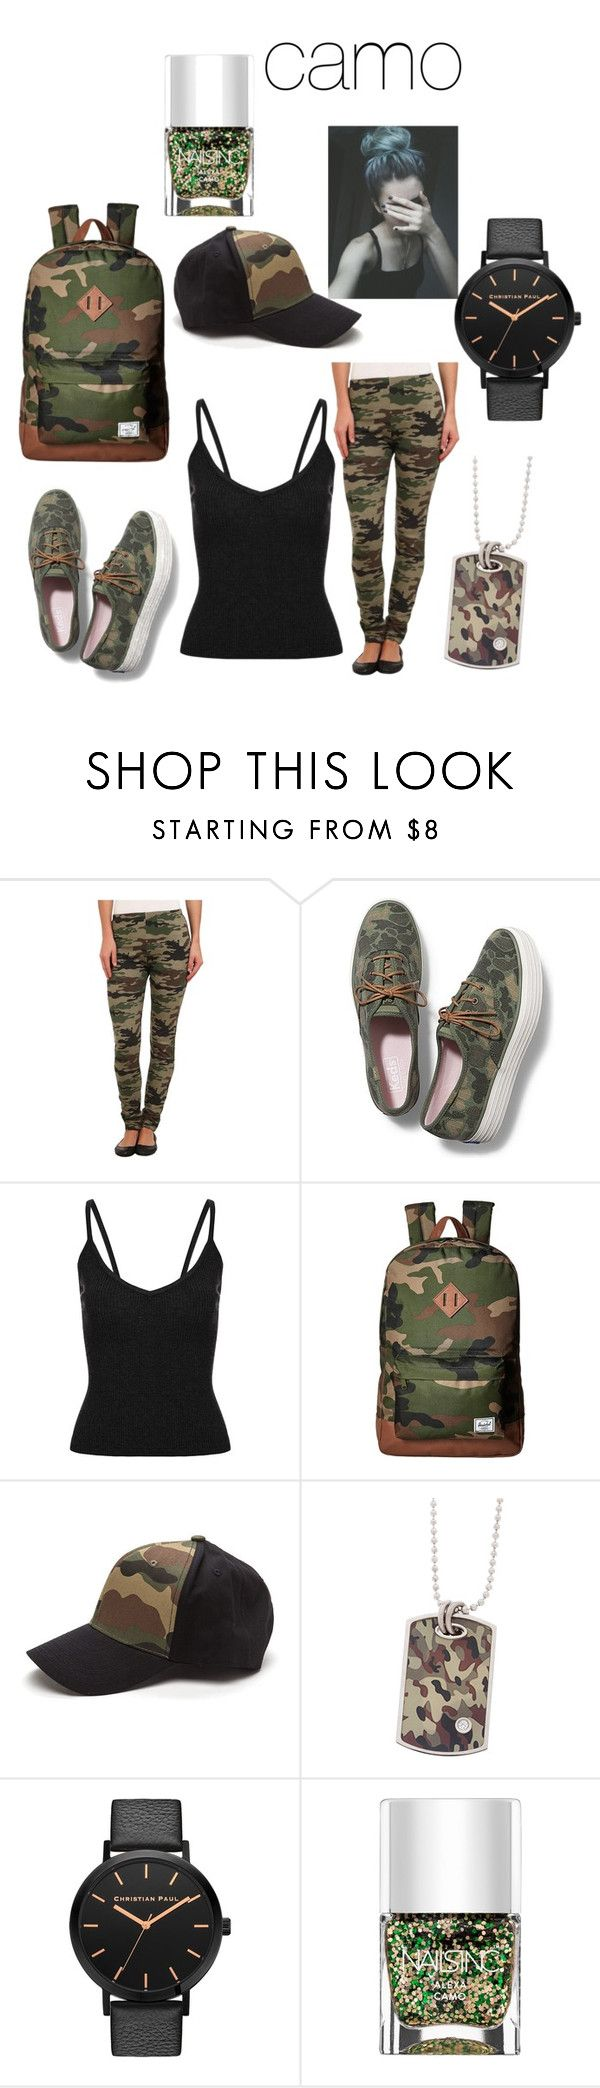 """""""cute camo outfit"""" by polarbear786 on Polyvore featuring Plush, Keds, Herschel Supply Co. and Nails Inc."""